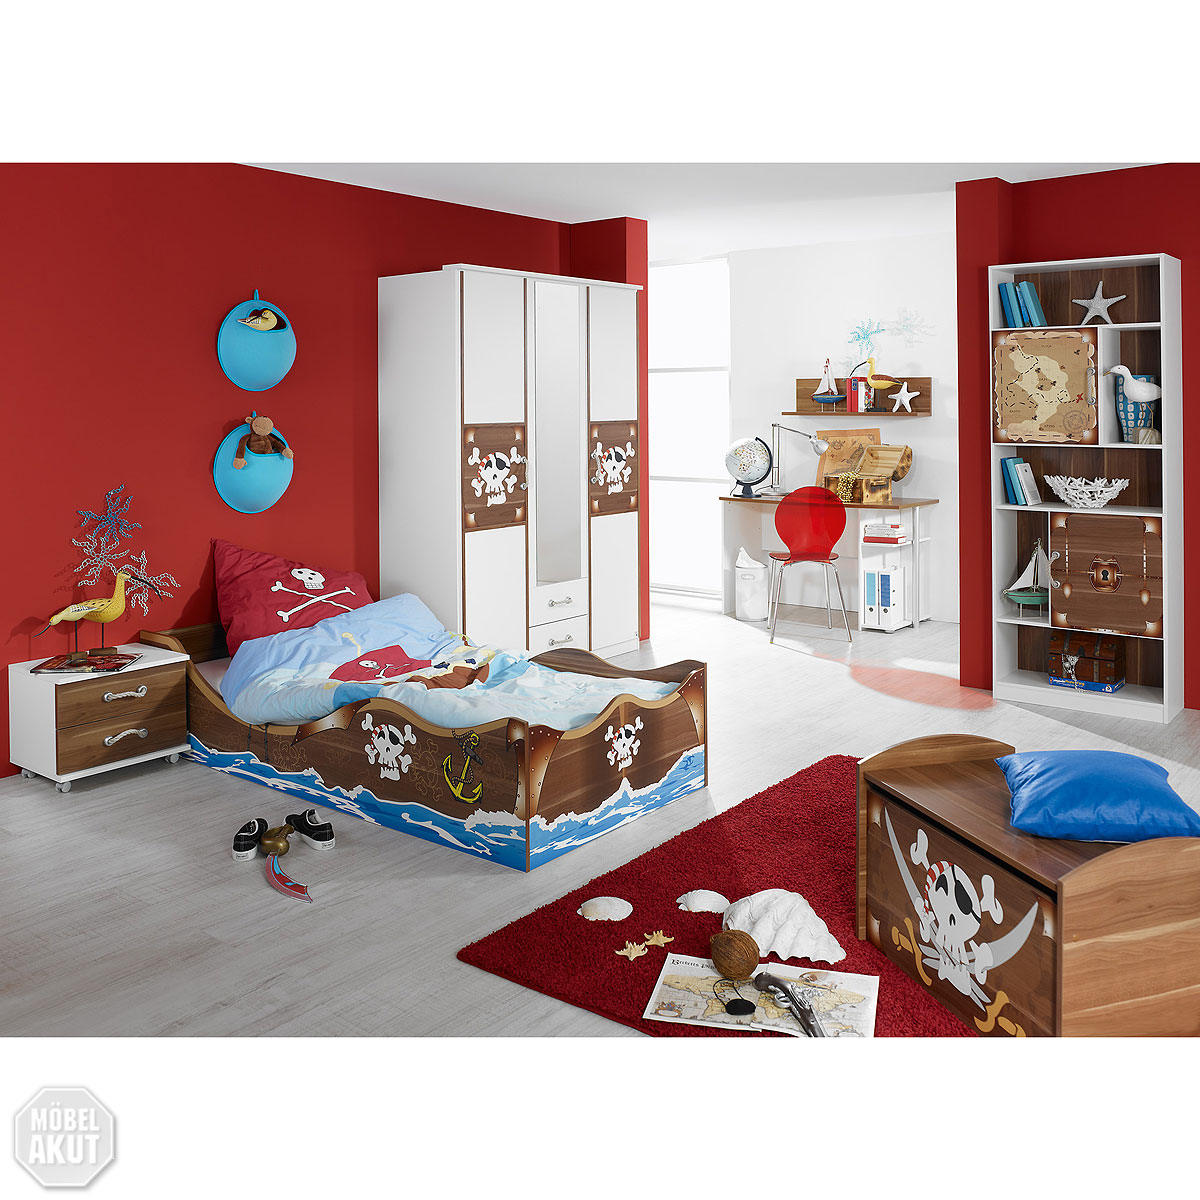 kinderzimmer set iv drake bett schrank schreibtisch regal. Black Bedroom Furniture Sets. Home Design Ideas